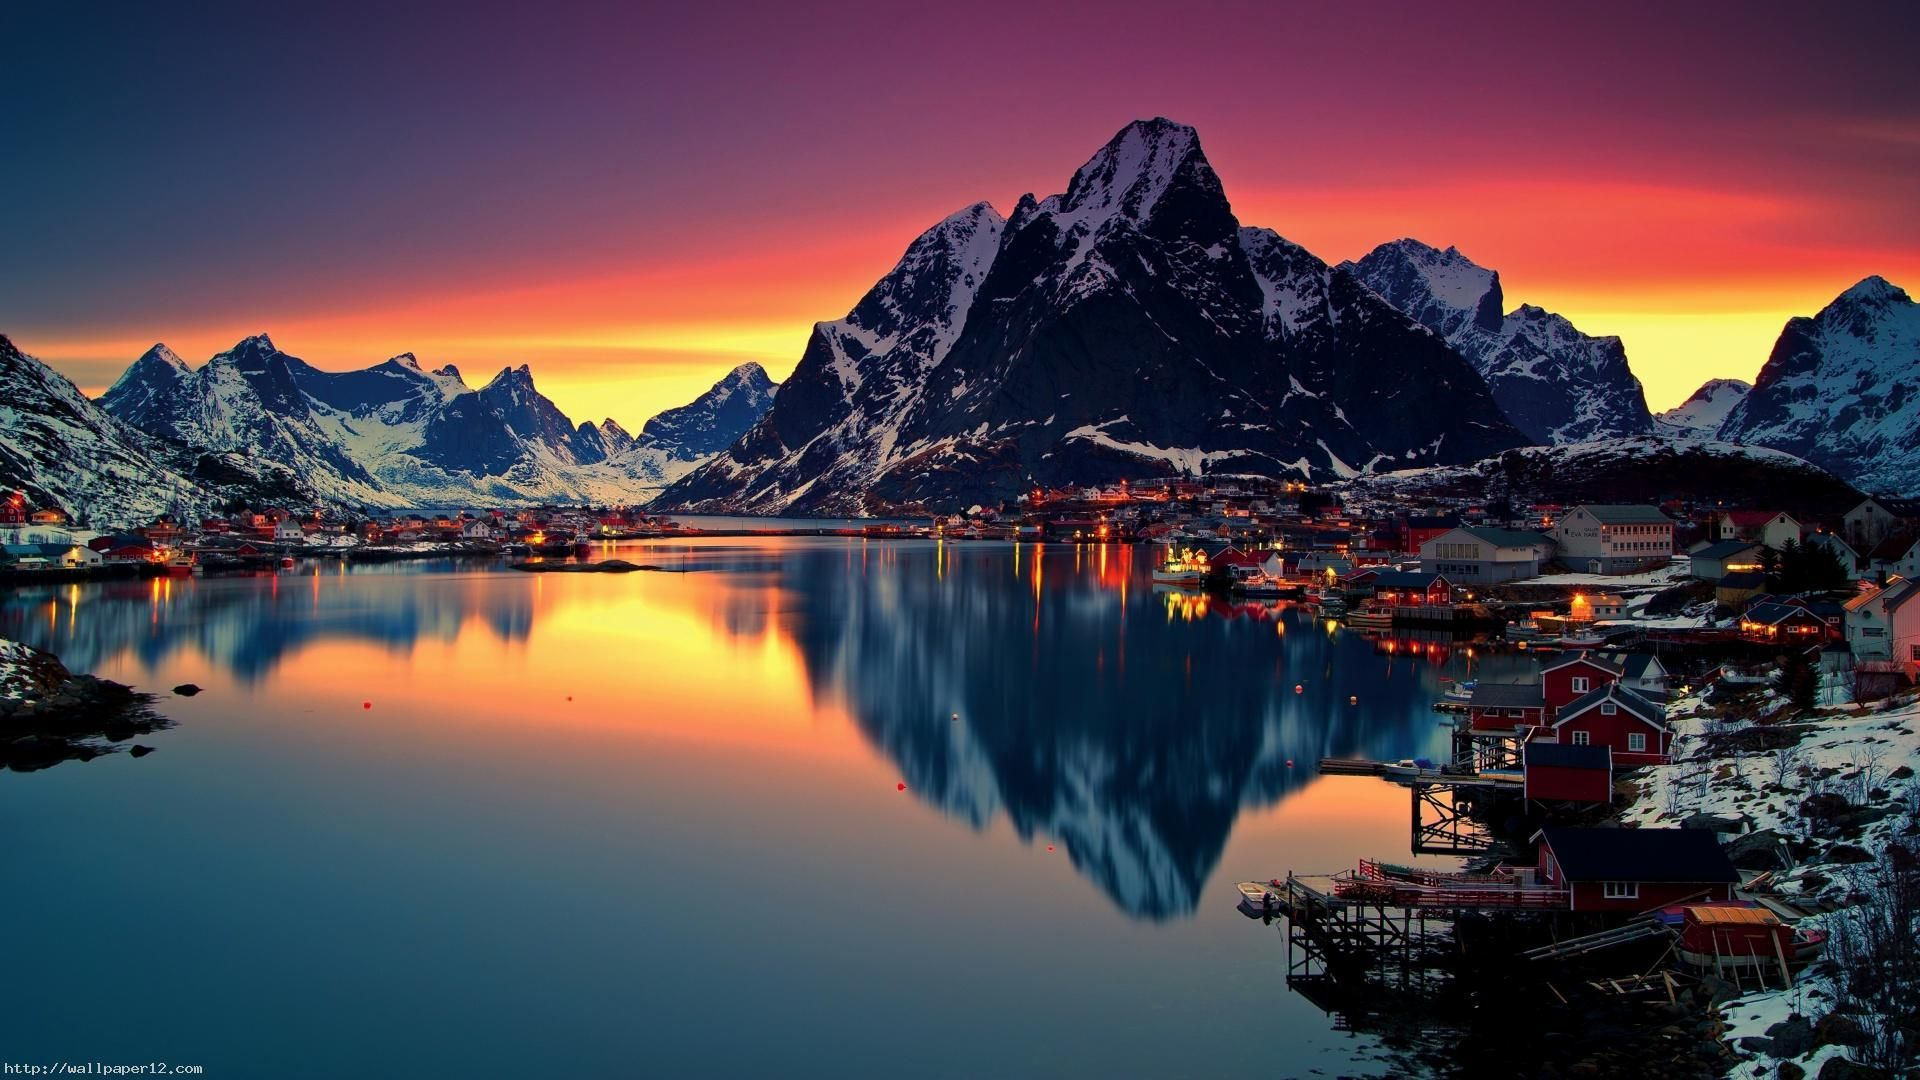 Places Hd Dual Screen Wallpapers Top Free Places Hd Dual Screen Backgrounds Wallpaperaccess